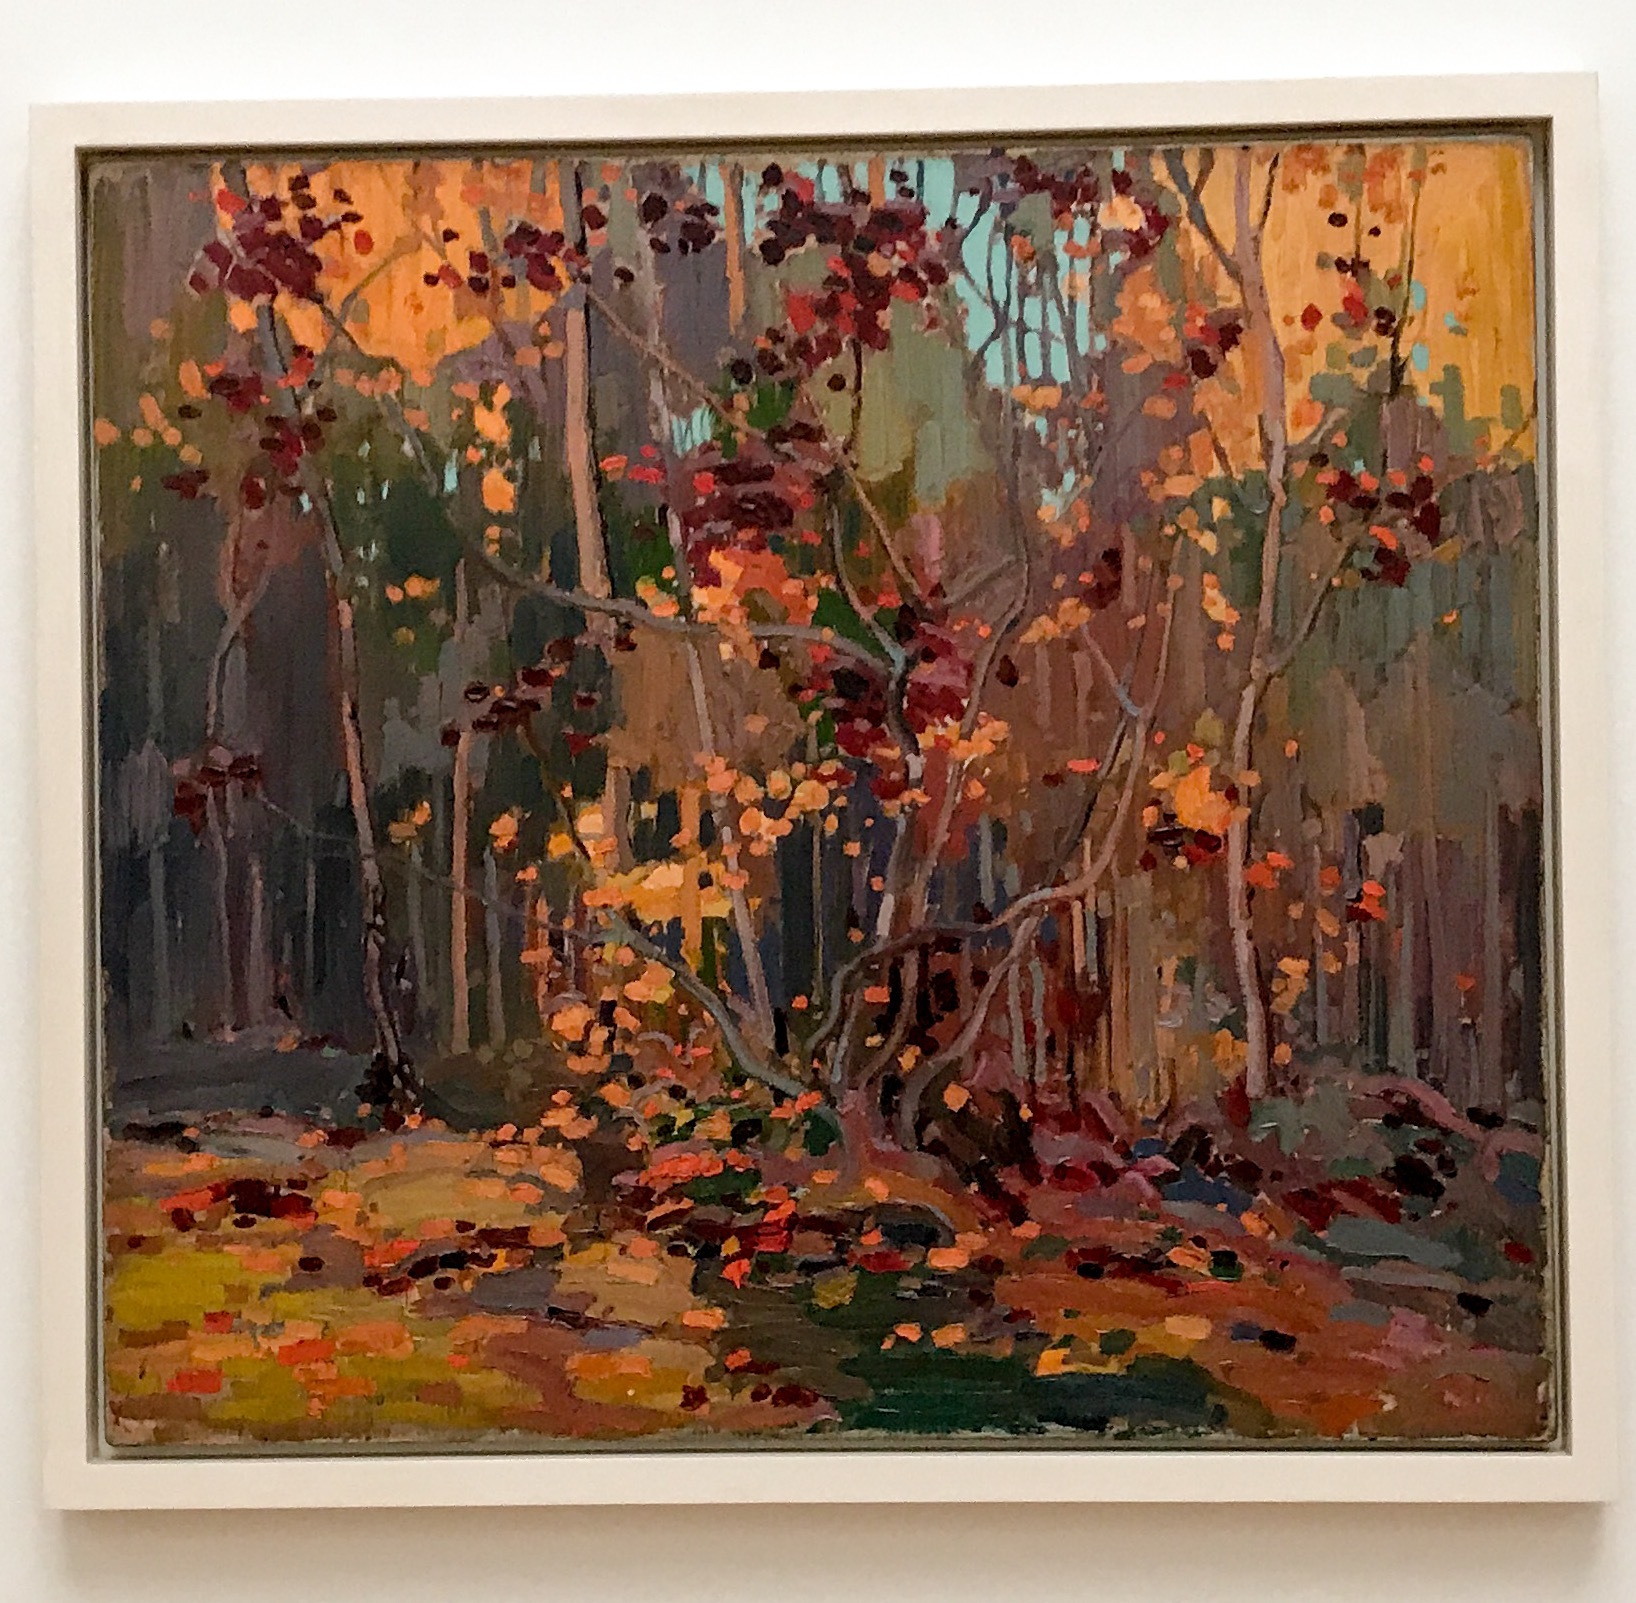 Tom Thomson maleri på AGO - Art Gallery of Ontario i Toronto